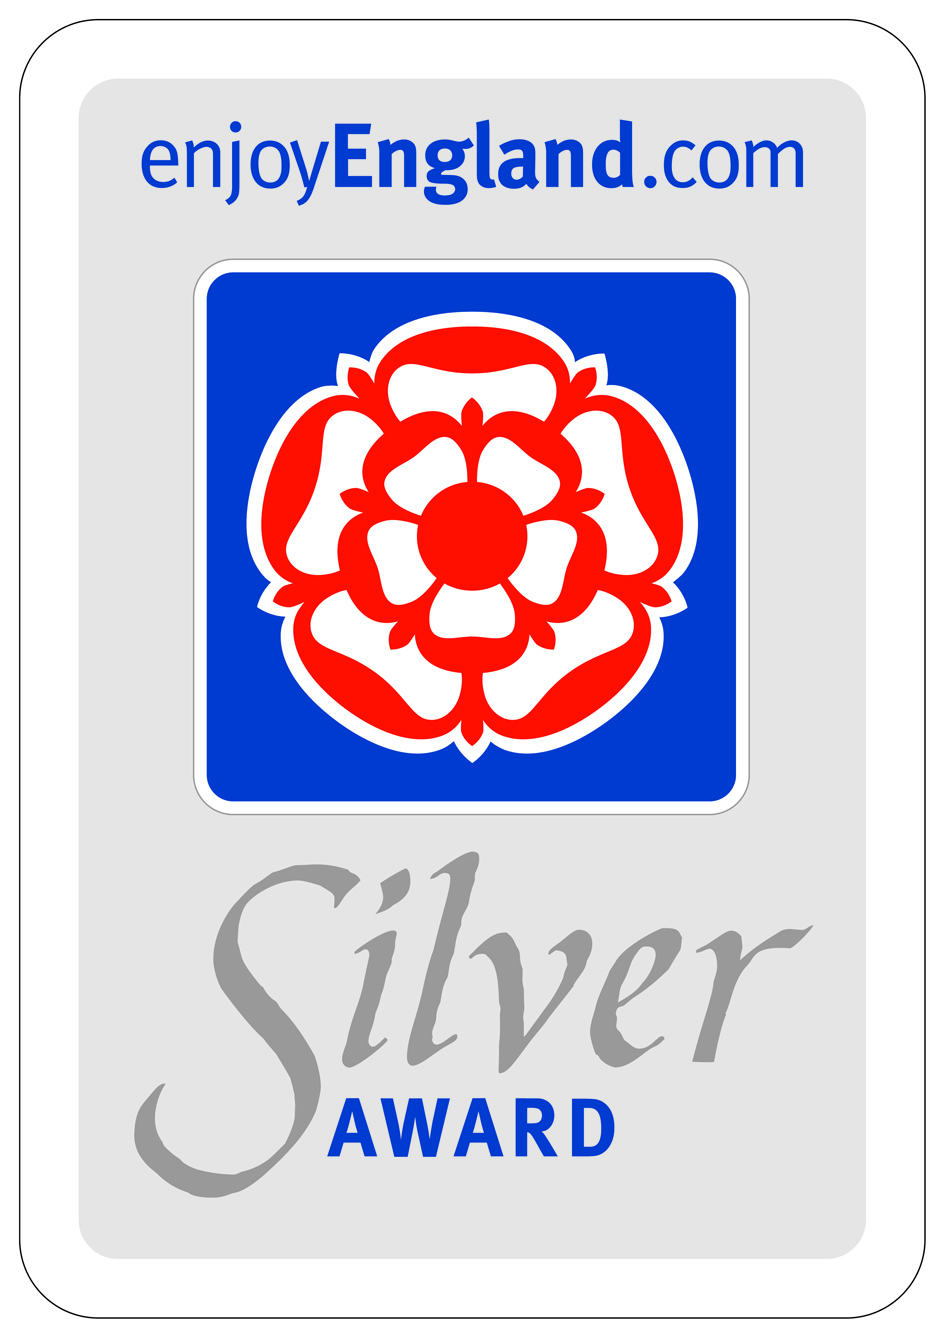 We were awarded a silver enjoy england award.